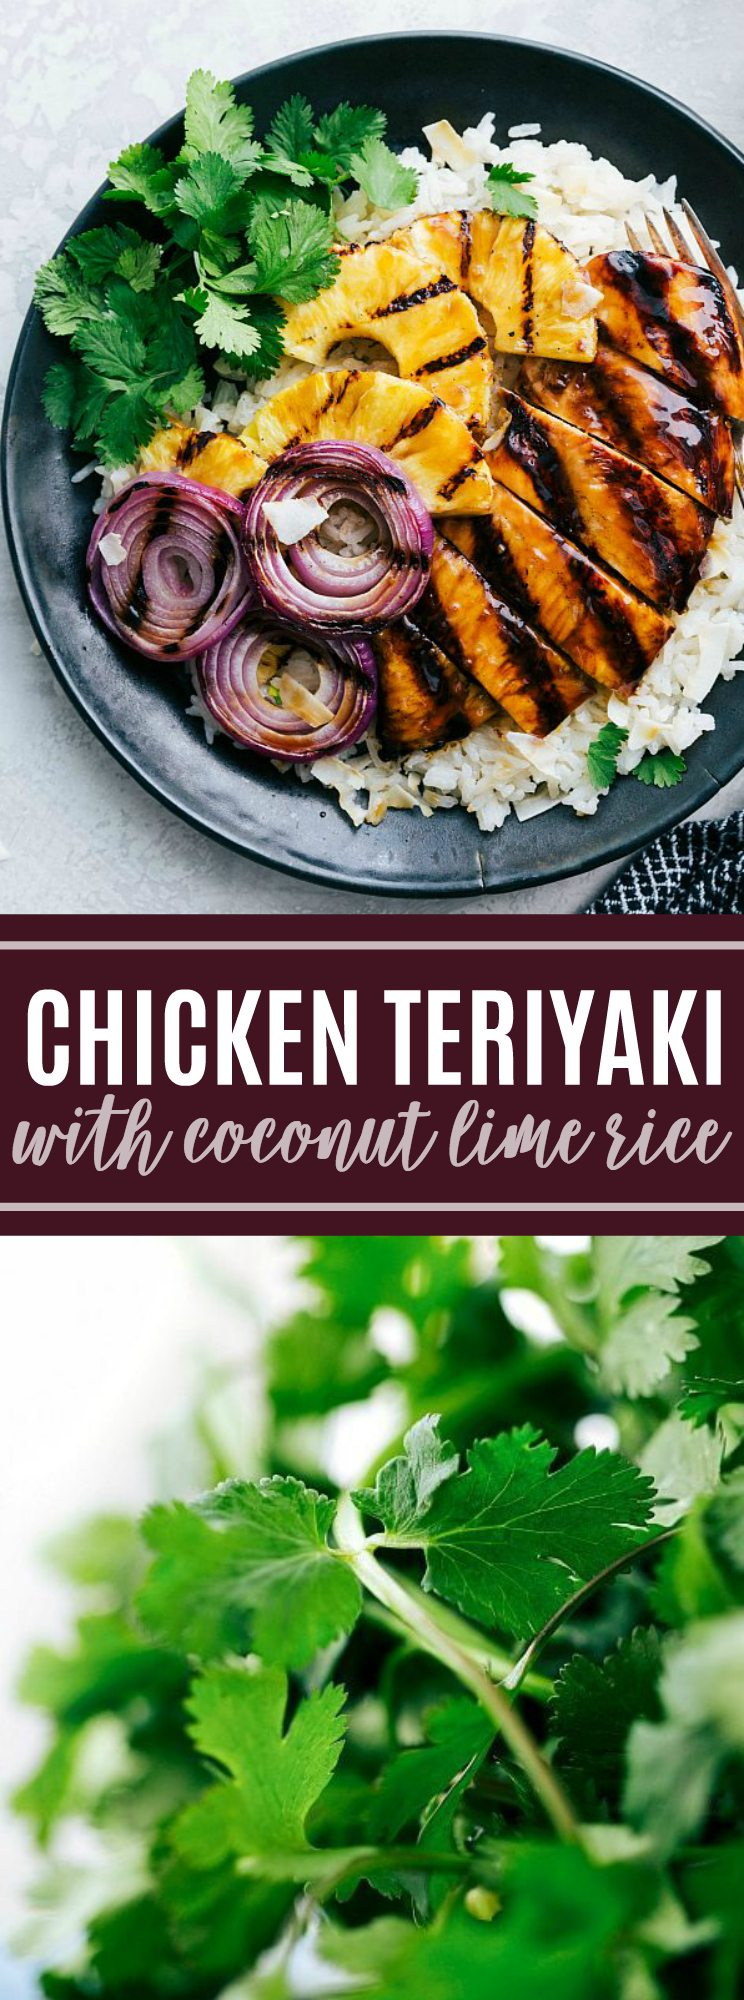 AMAZING Chicken Teriyaki with the BEST Teriyaki sauce and coconut lime rice! via chelseasmessyapron.com #dinner #kidfriendly #easy #quick #chickenbreast #chicken #teriyaki #sauce #pineapple #onion #coconut #lime #rice #grilled #summer #marinade